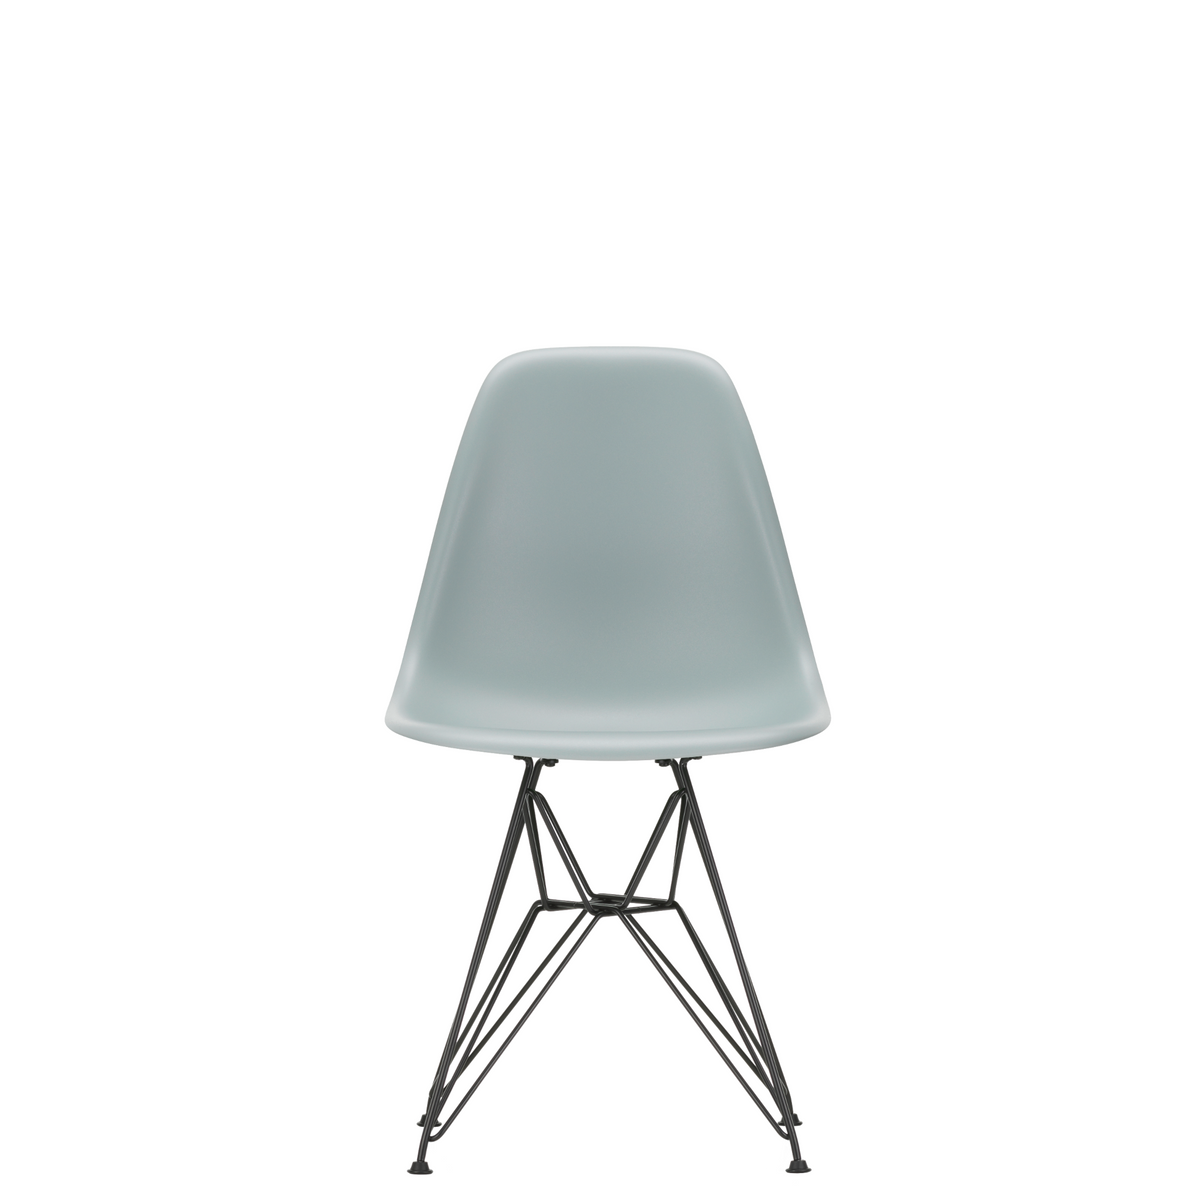 Vitra Eames Plastic Side Chair DSR Powder Coated for Outdoor Use Light Grey Shell Black Powdercoated Base